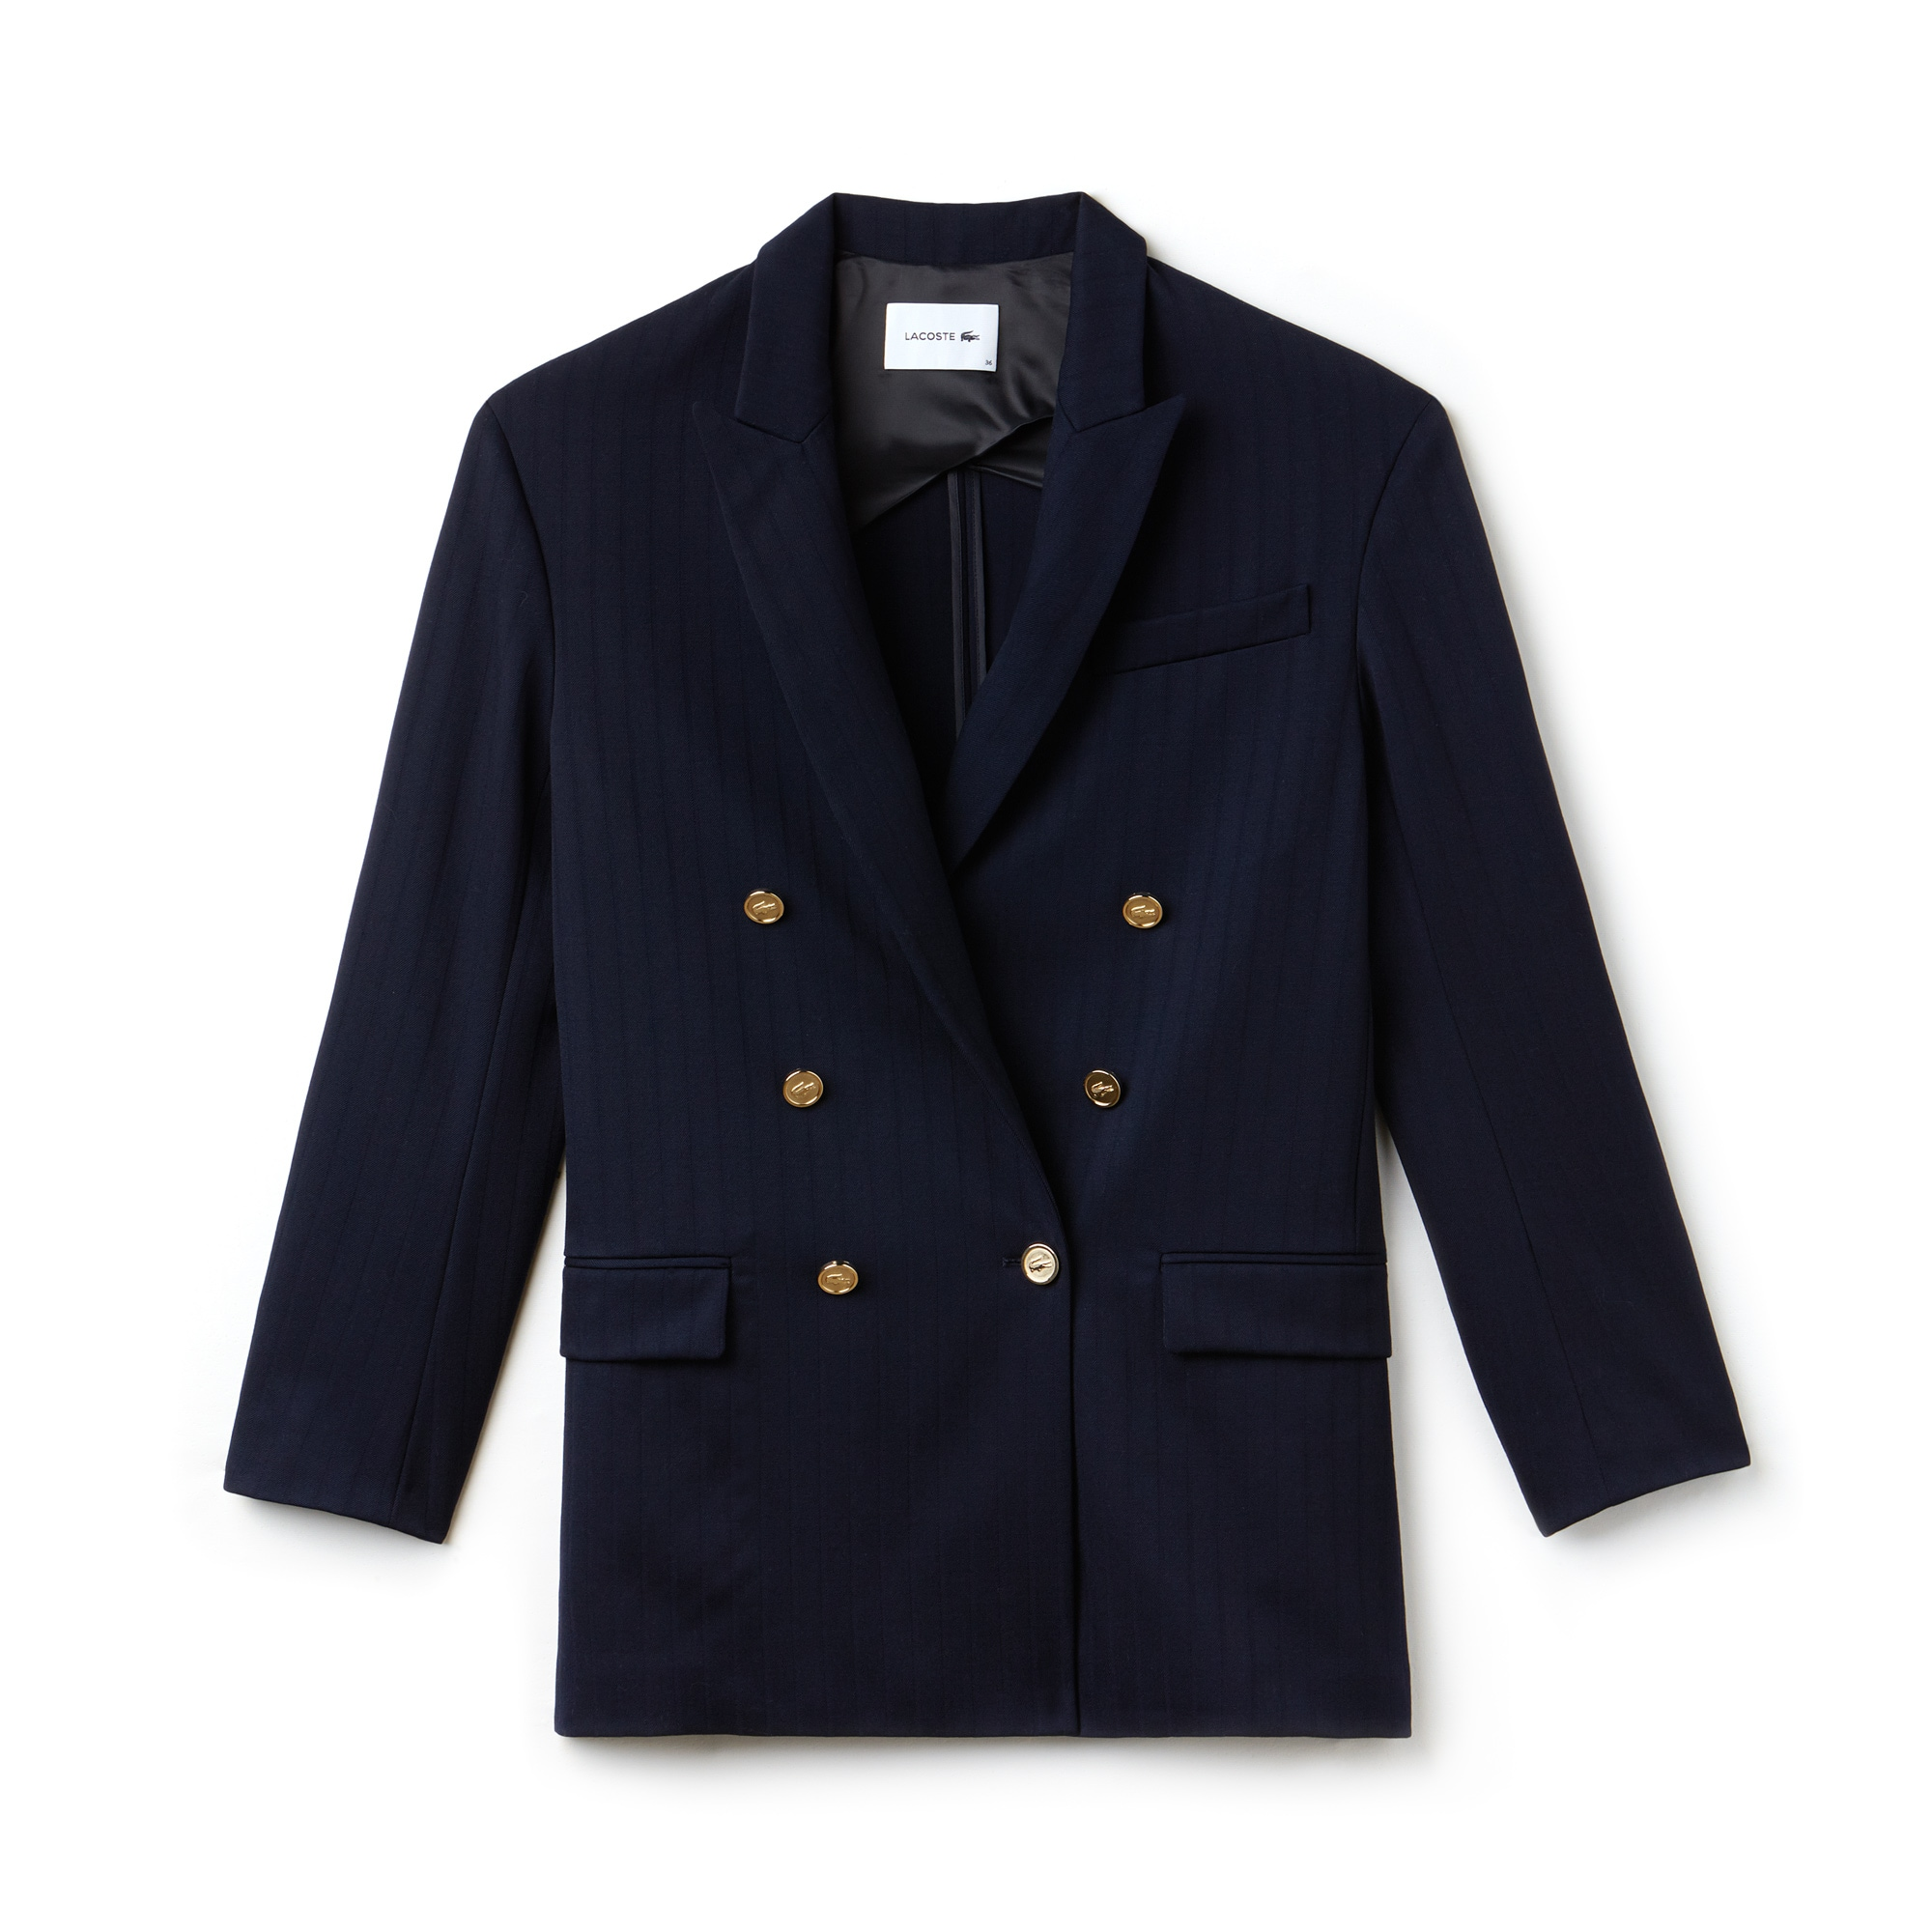 Women's Fashion Show Stretch Wool Broadcloth Double-Breasted Blazer